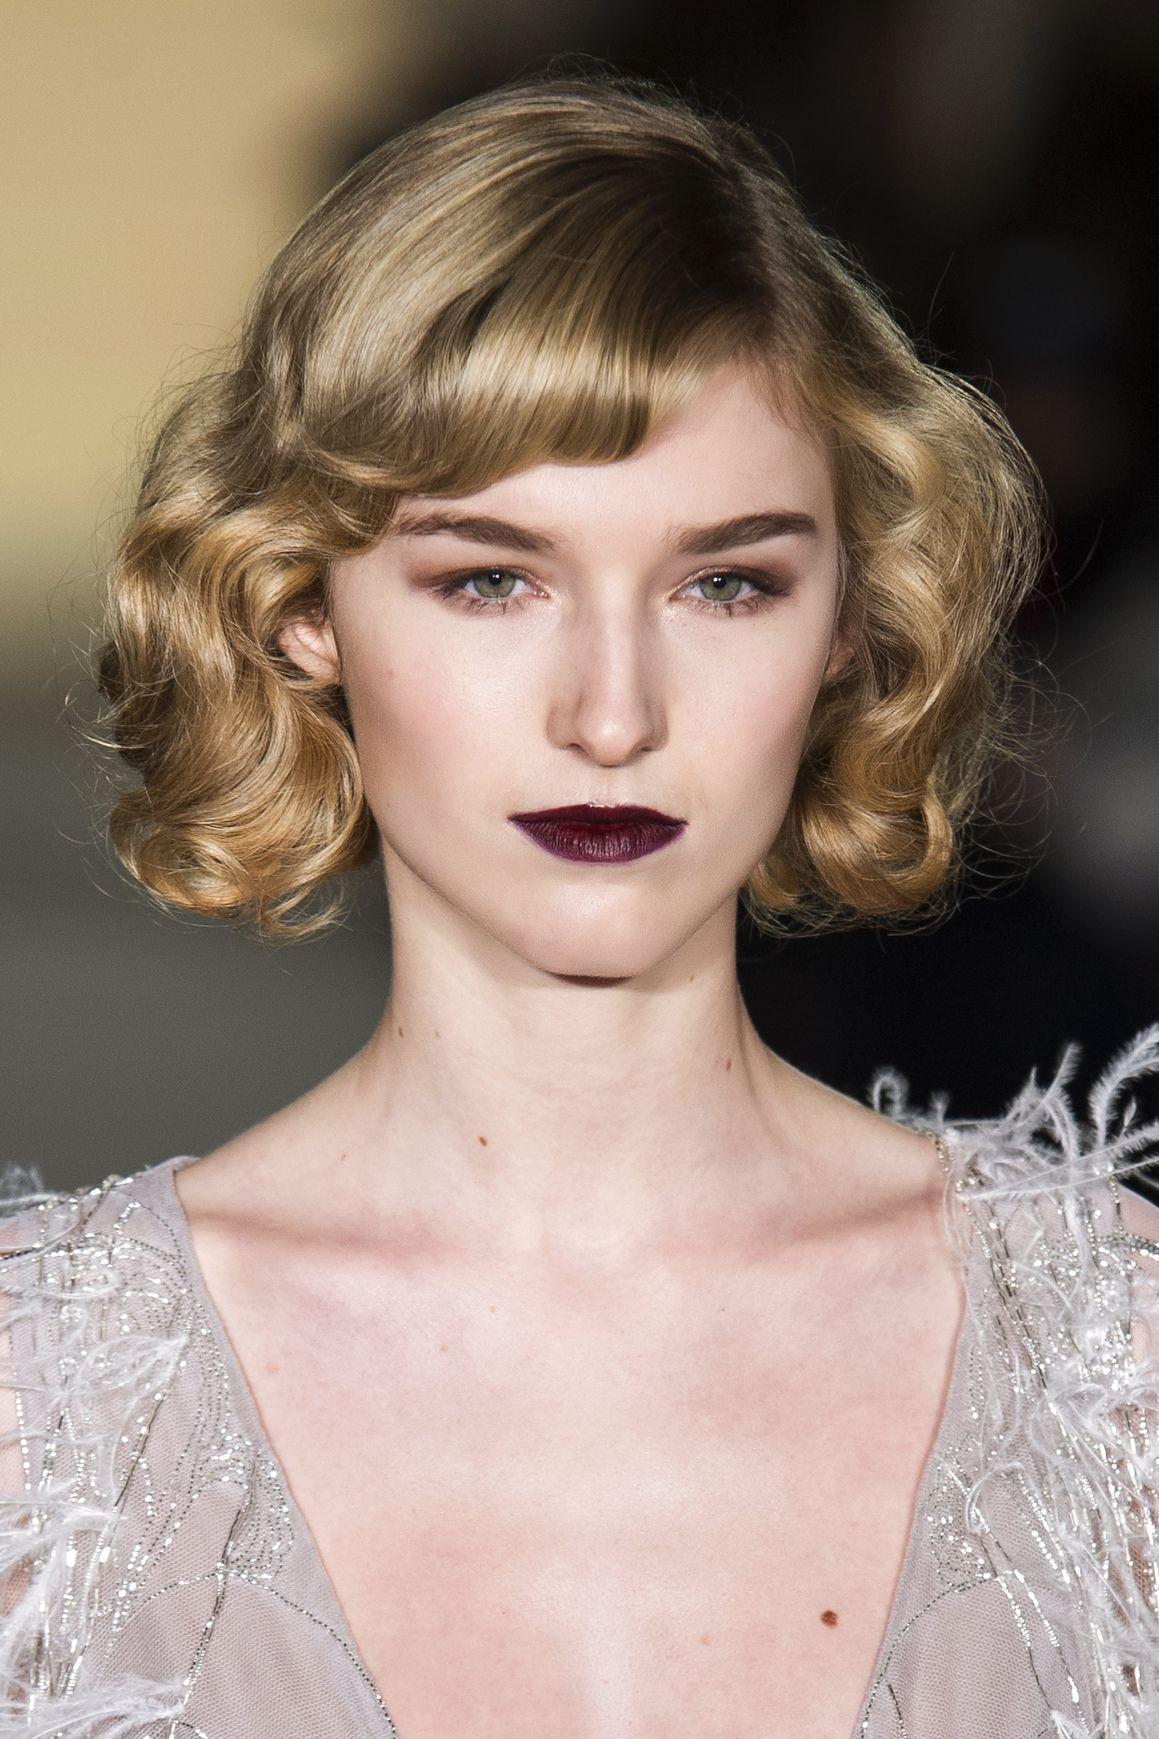 Hairstyles Fall 2015 The 50 Best Bangs For Fall  Bangs And Princess Hair